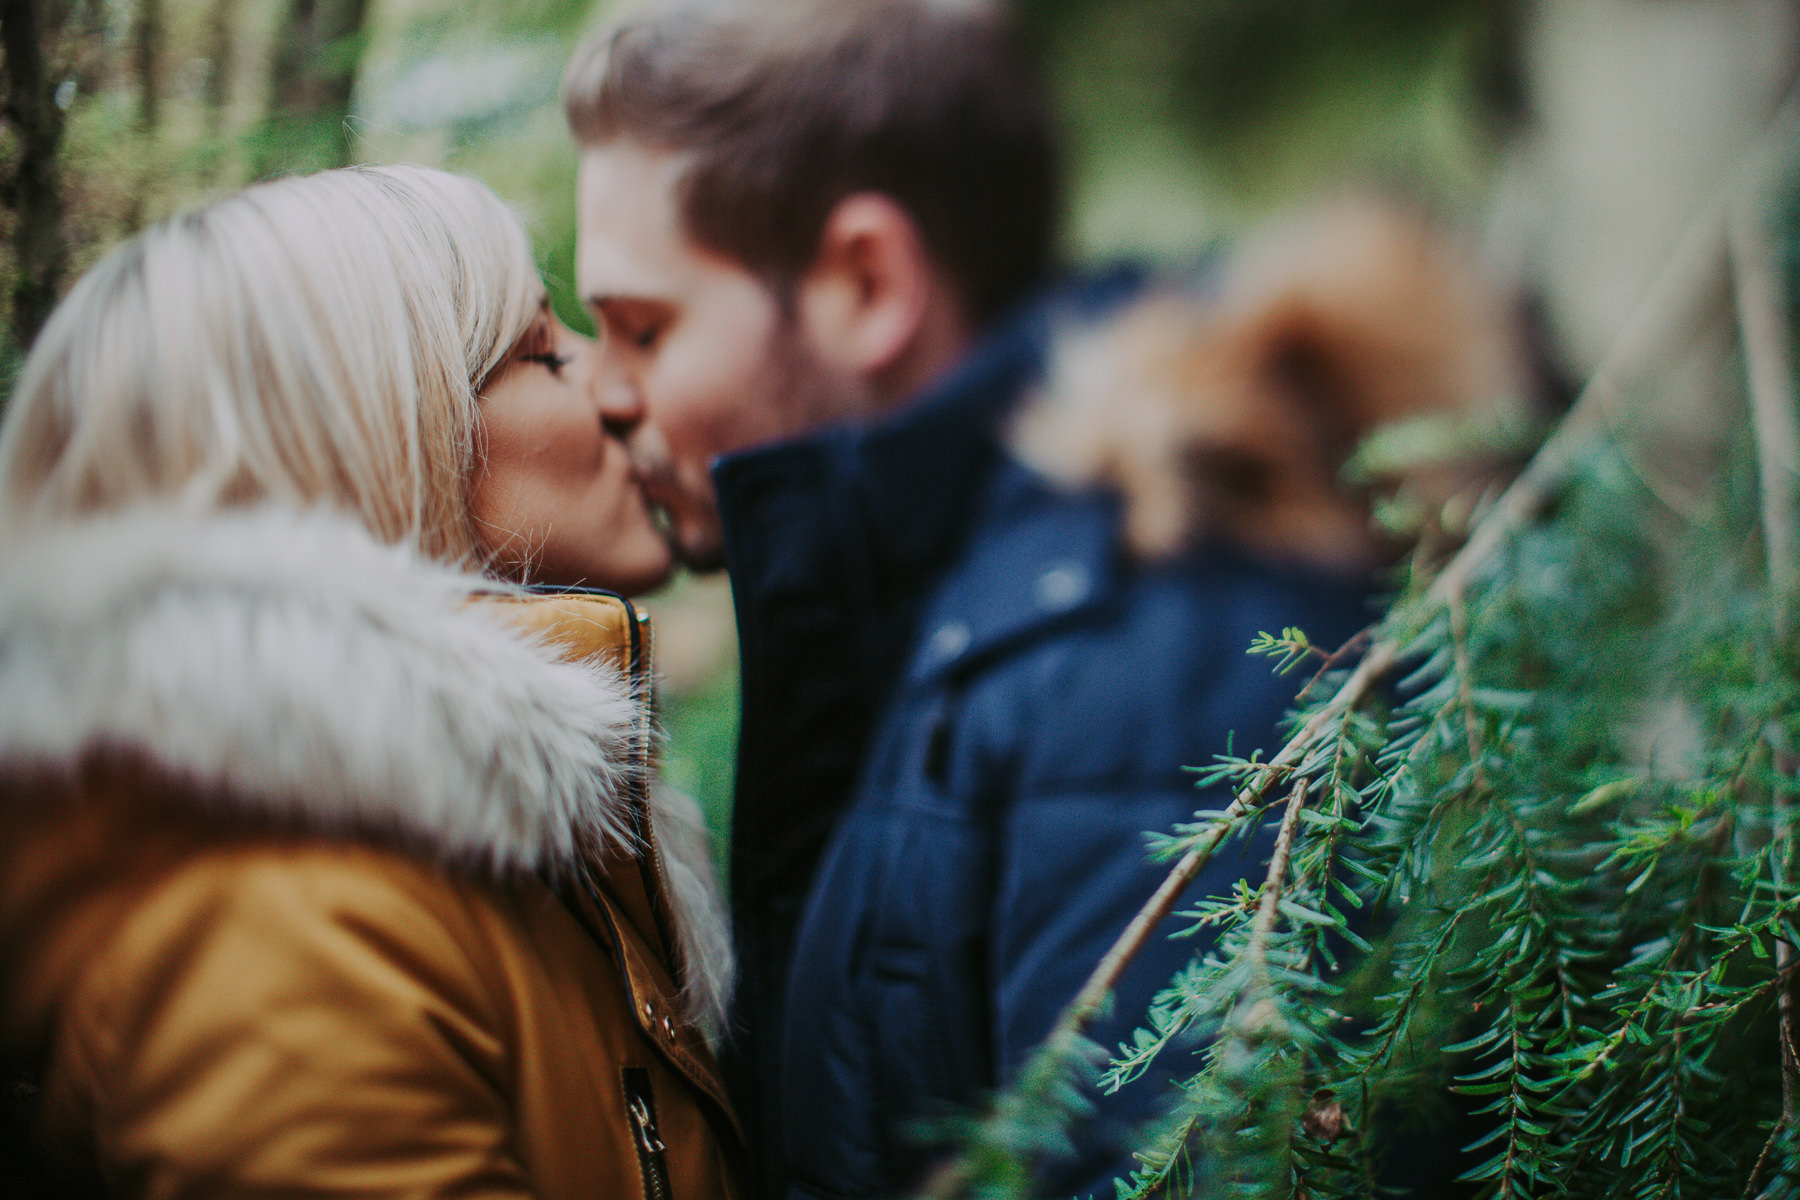 Emily & Phil | Newmillerdam engagement shoot 33